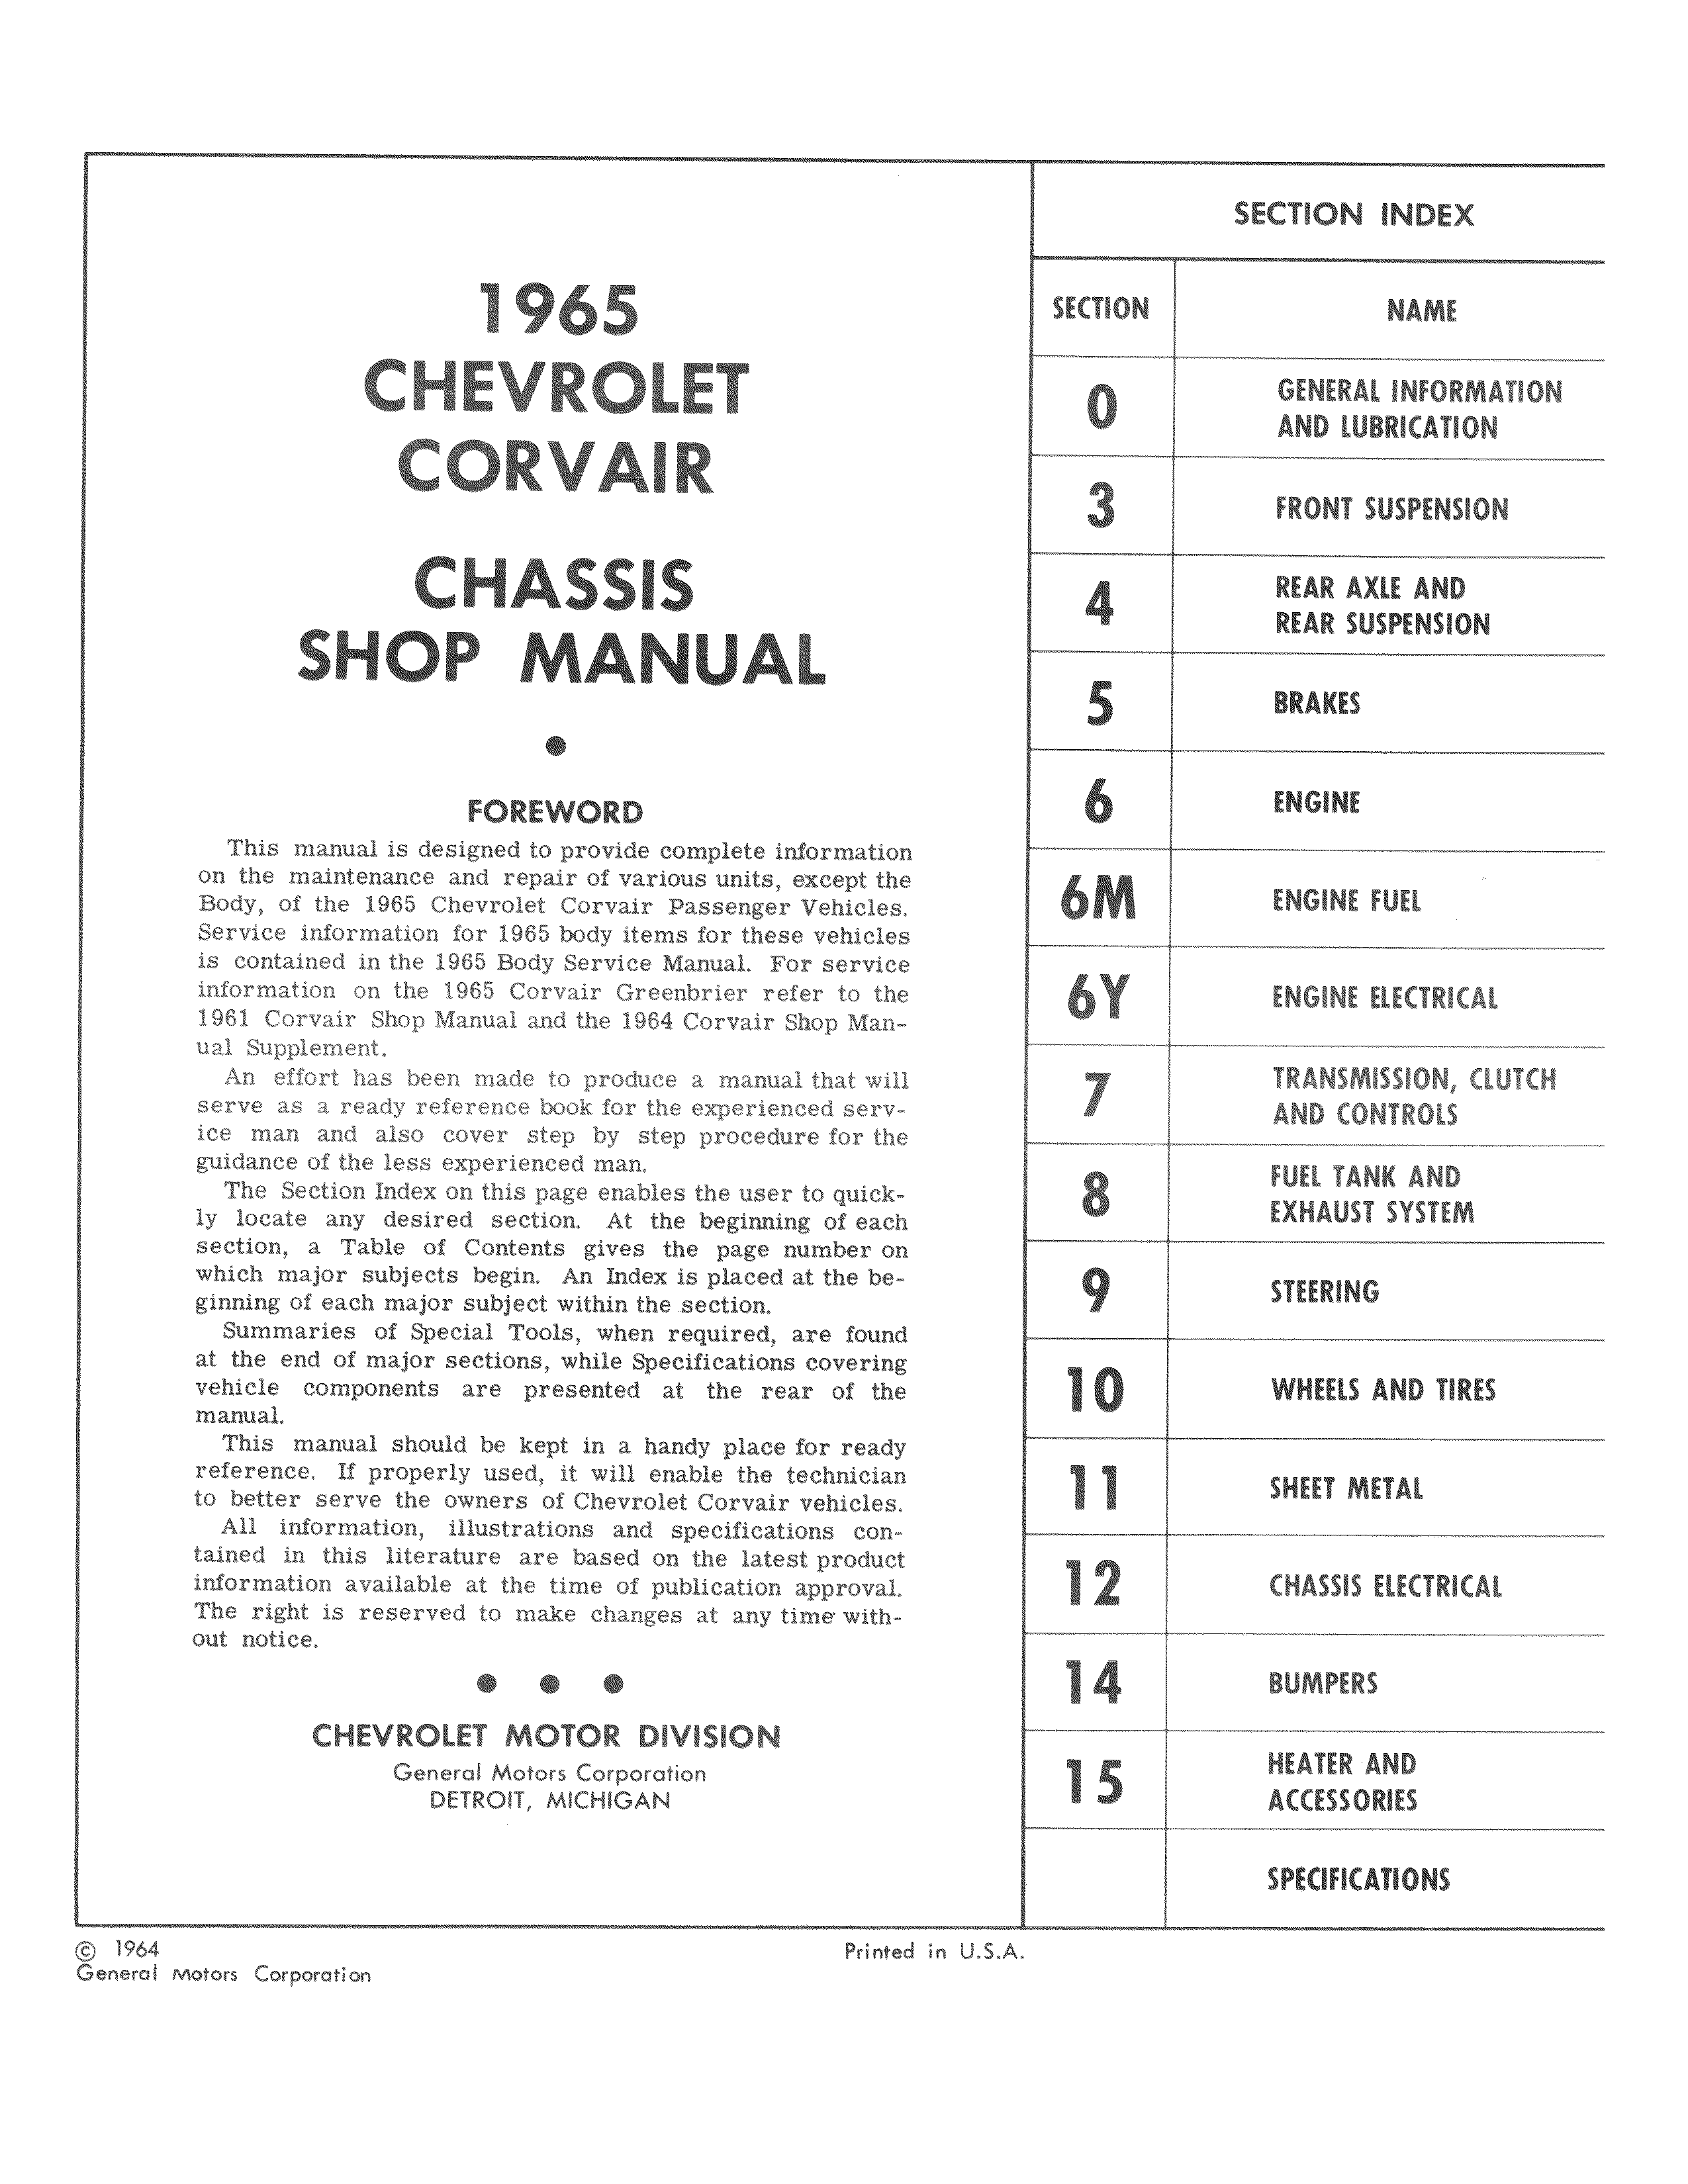 Corvair Chassis Shop Manual December 1964